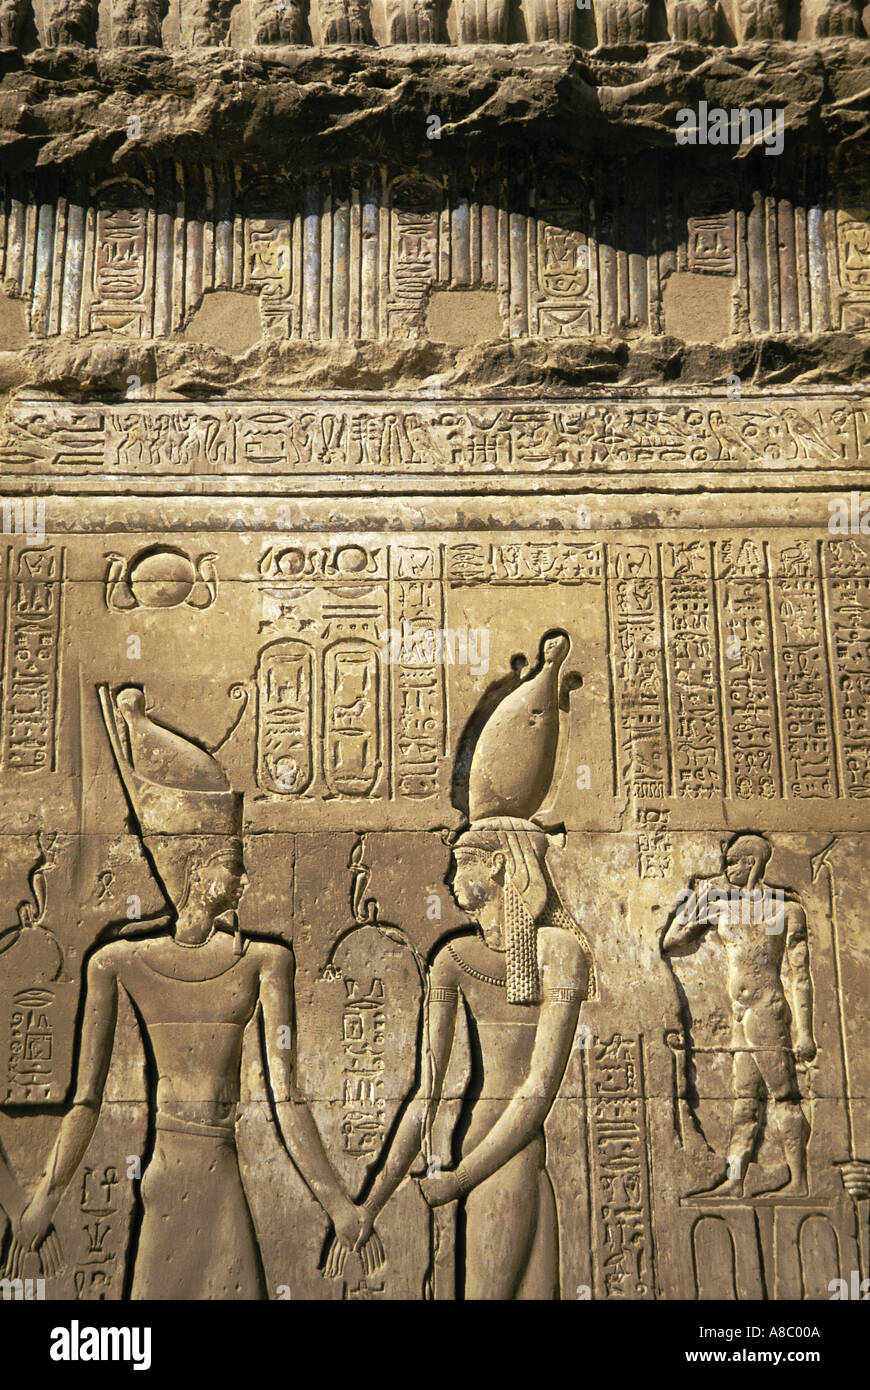 hieroglyphs khnum temple at isna egypt - Stock Image